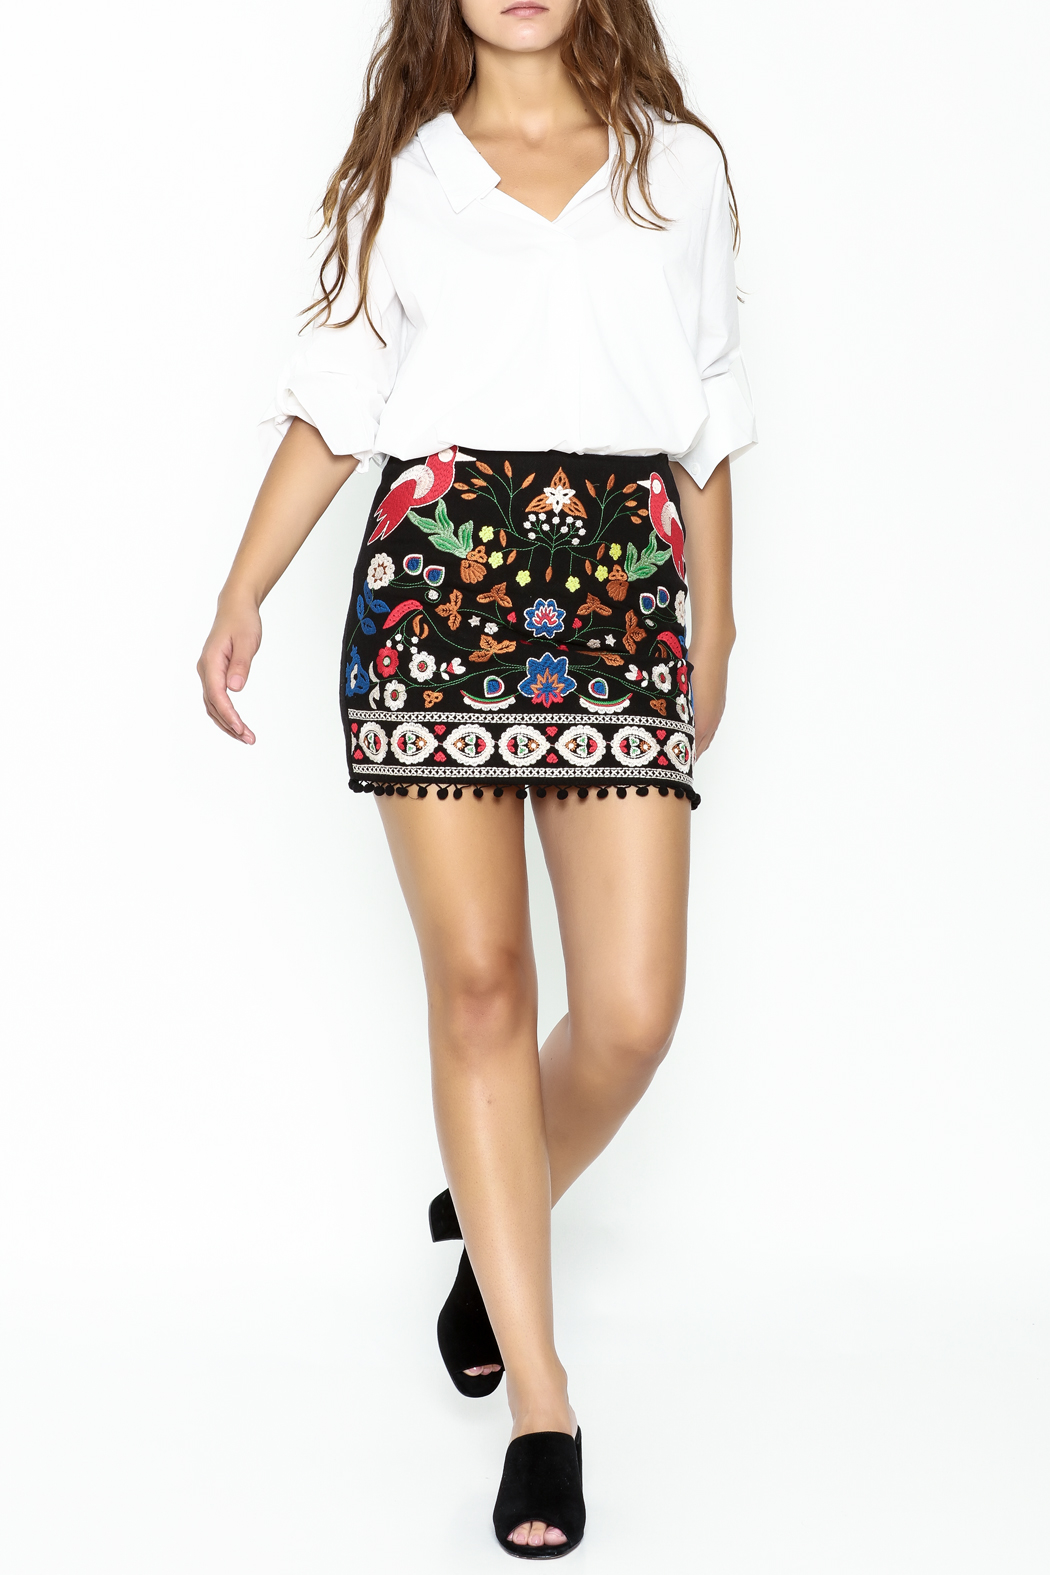 Umgee USA Embroidered Skirt - Side Cropped Image